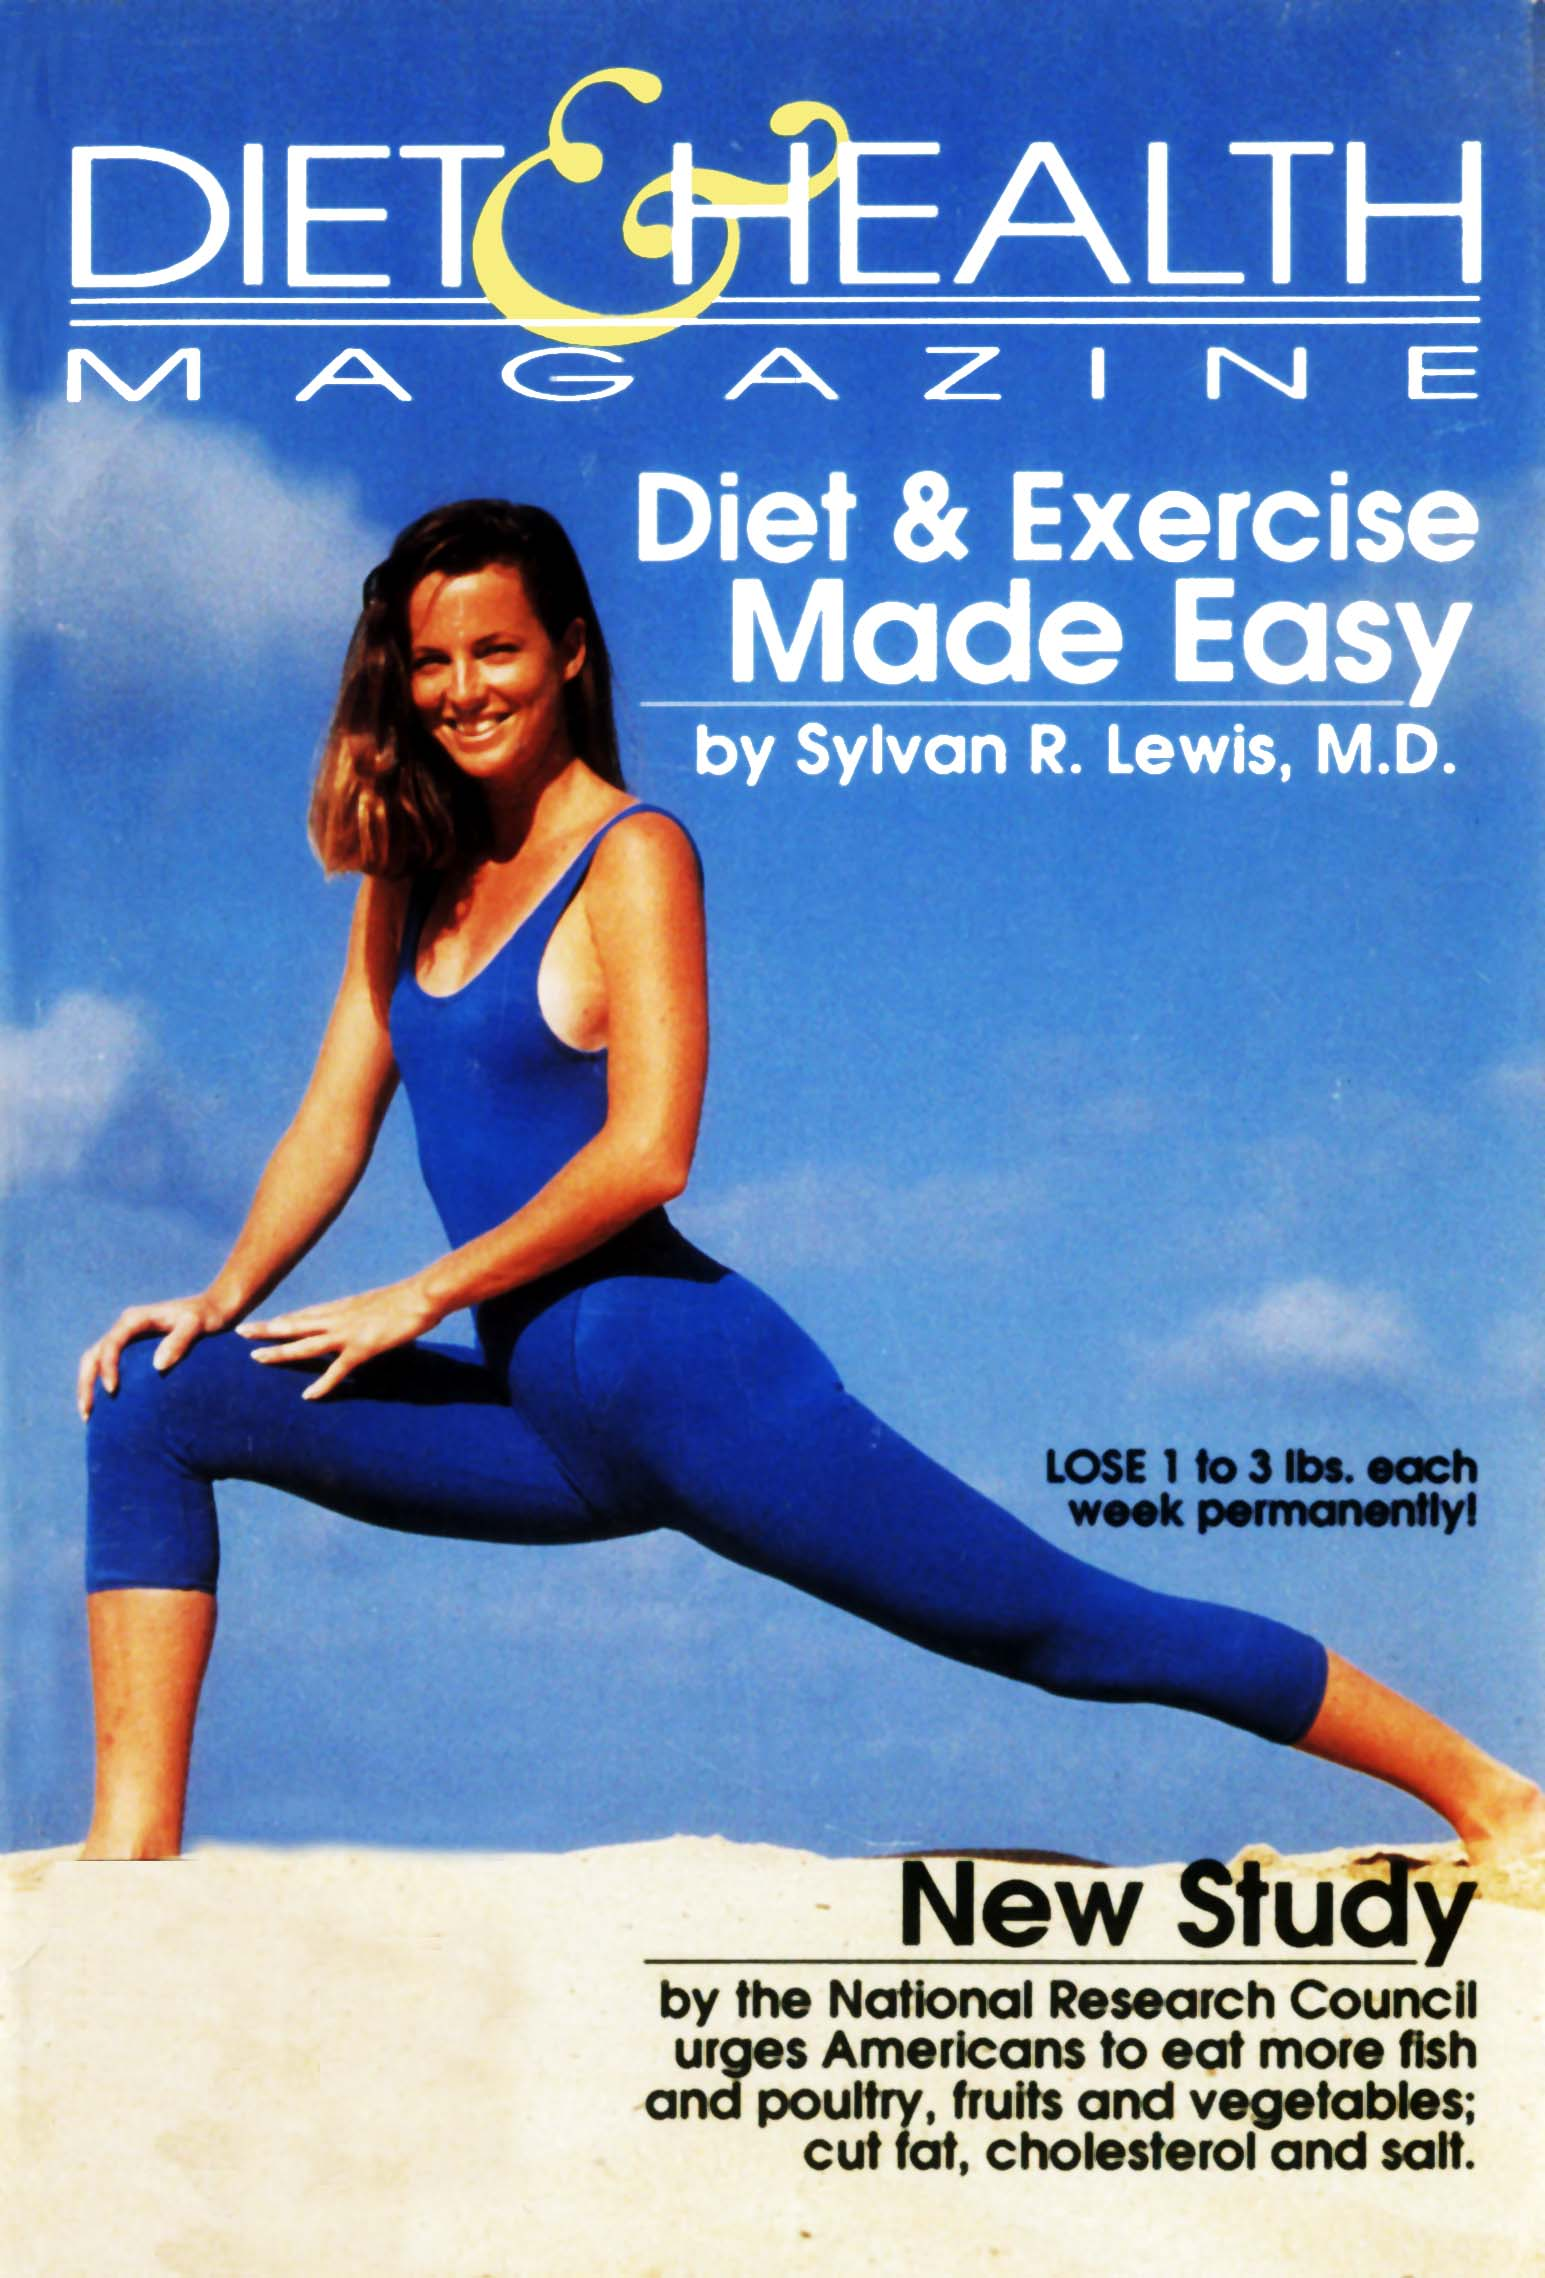 Diet & Exercise Made Easy